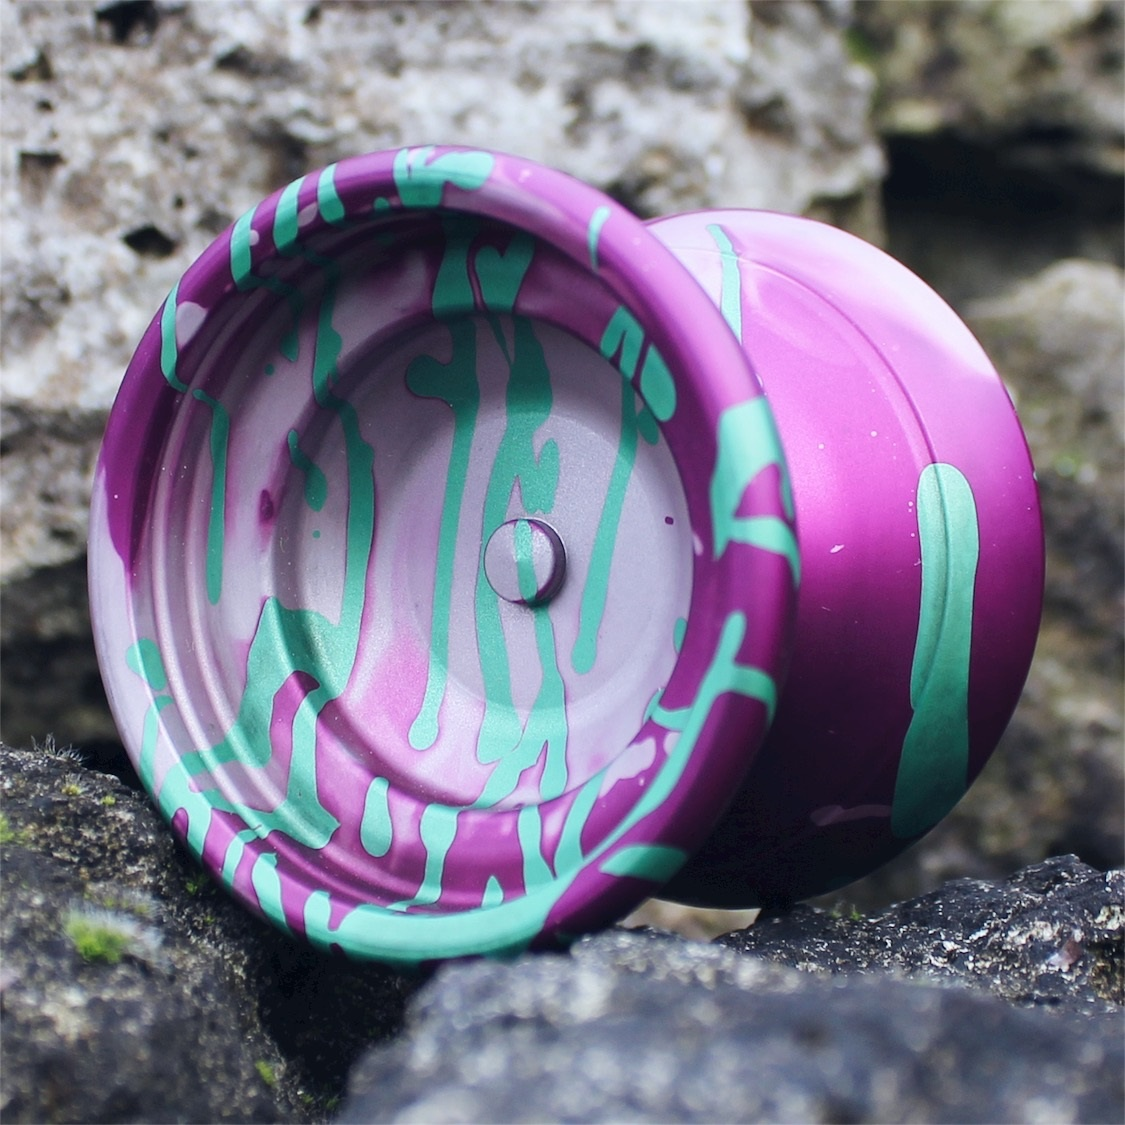 Yoyofficer Vector - Purple & Silver acid wash w/ Green splash